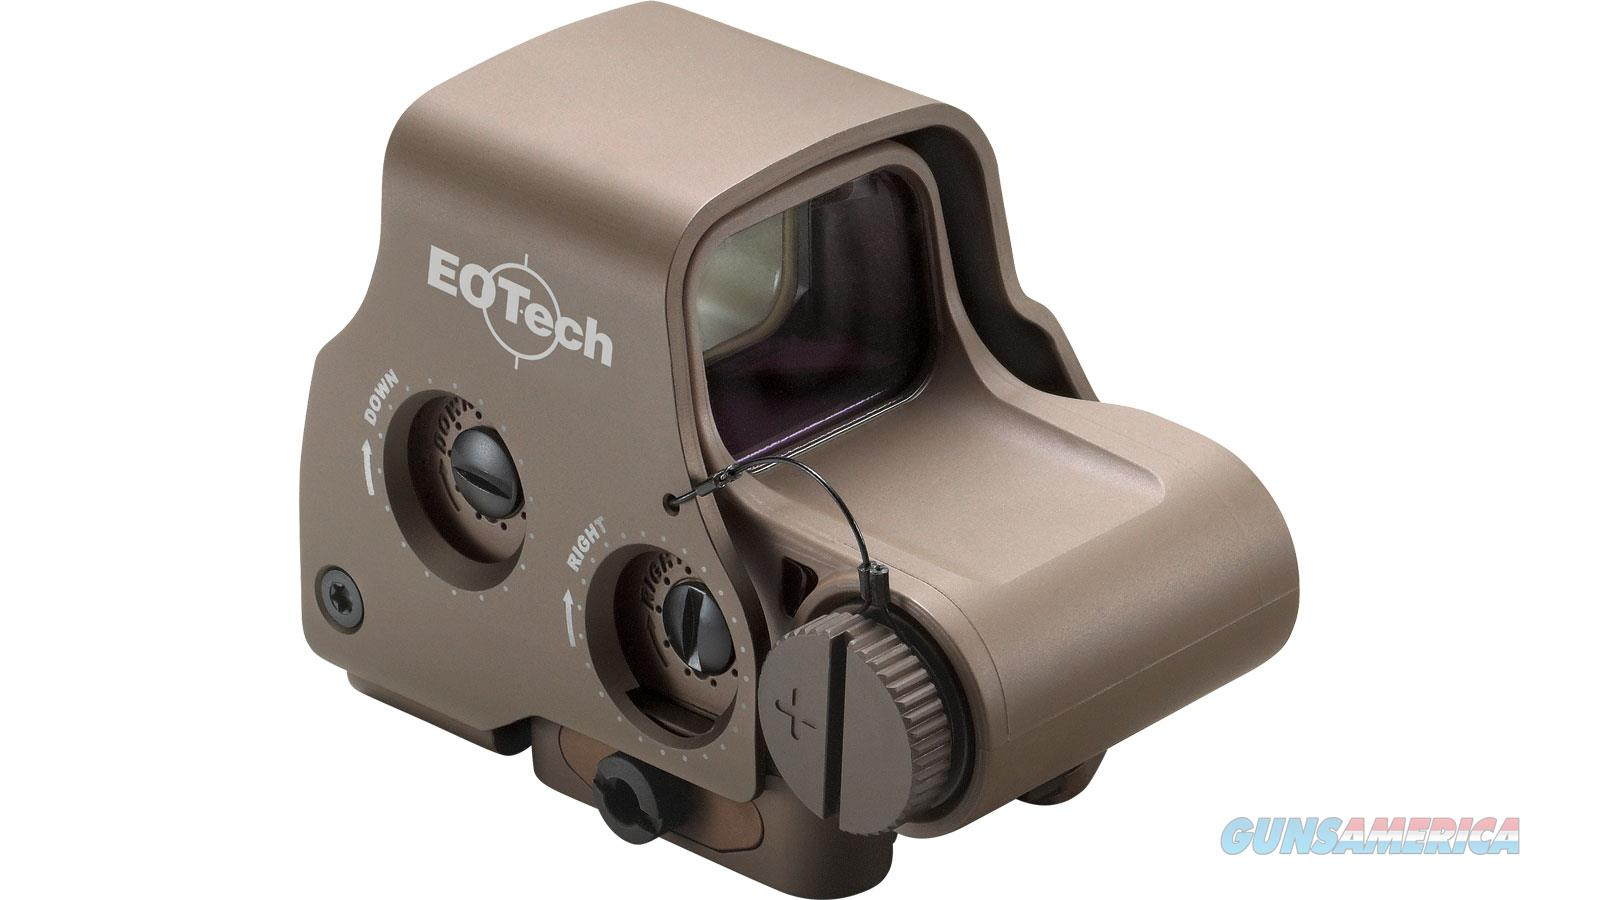 Eotech Exps A65 Reticle Tan EXPS3-2TAN  Non-Guns > Iron/Metal/Peep Sights